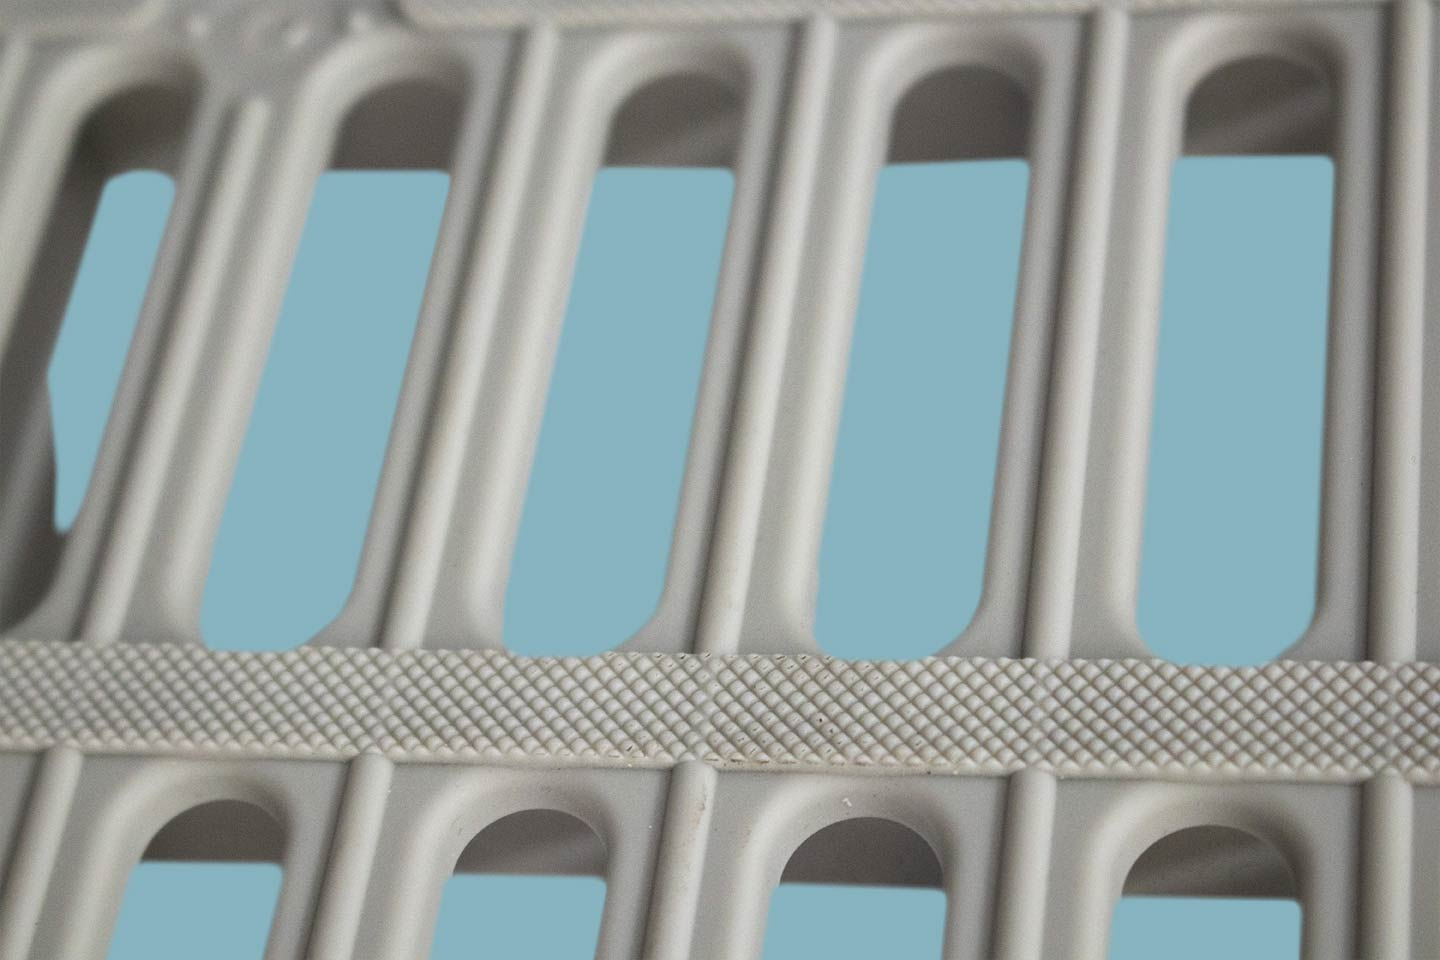 A close up of the spaces in an Aqua-Dek dock panel.